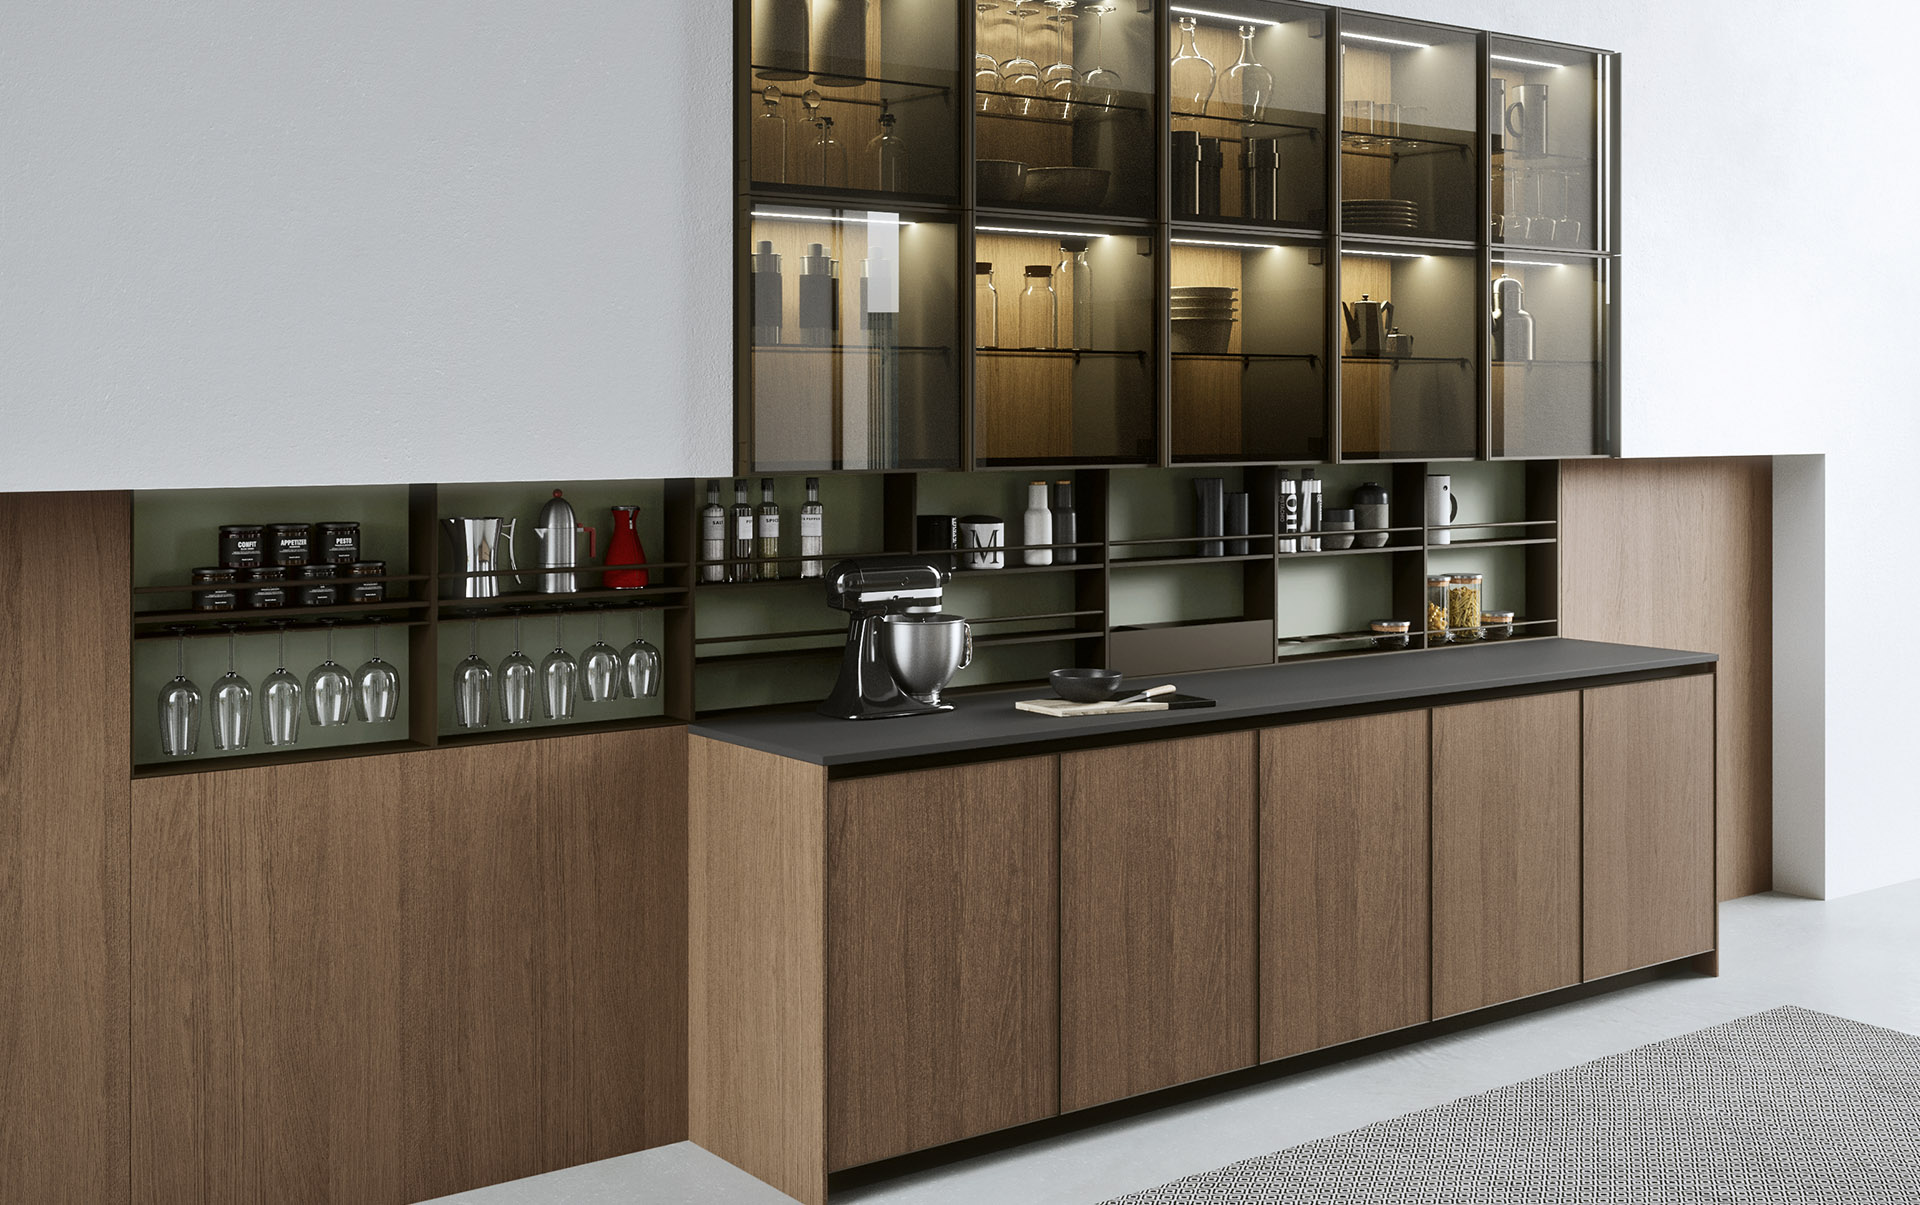 100 kitchen cabinets in brooklyn kitchen cabinets for Kitchen cabinets brooklyn